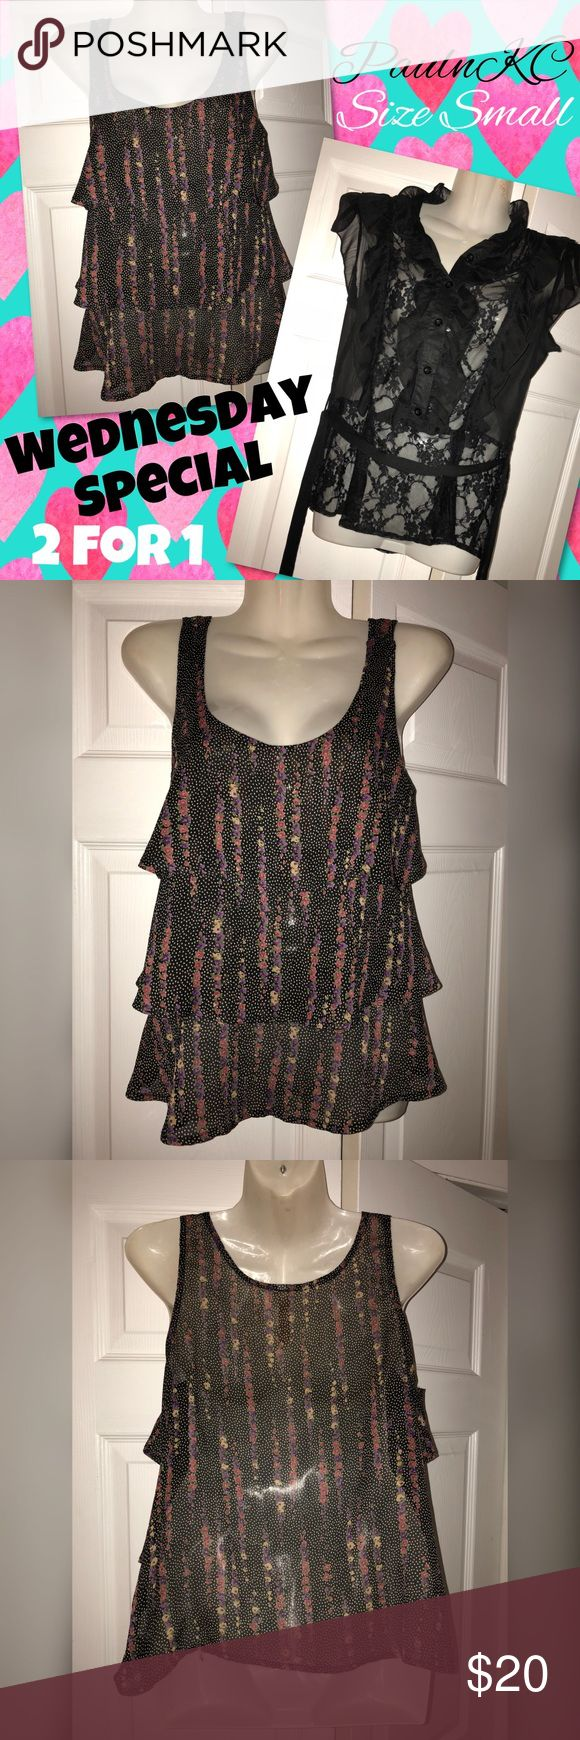 ‼️2for1SALE‼️PaulnKC Women's Tops Wednesday Special Sale‼️ Two PaulnKC women's tops size small for price of one! Both tops are very pretty & are perfect for a day at the office, warm weather &/or any just because occasion 🌸💖 both only worn once & in great condition 🙂 Happy Wednesday!! PaulnKC Tops